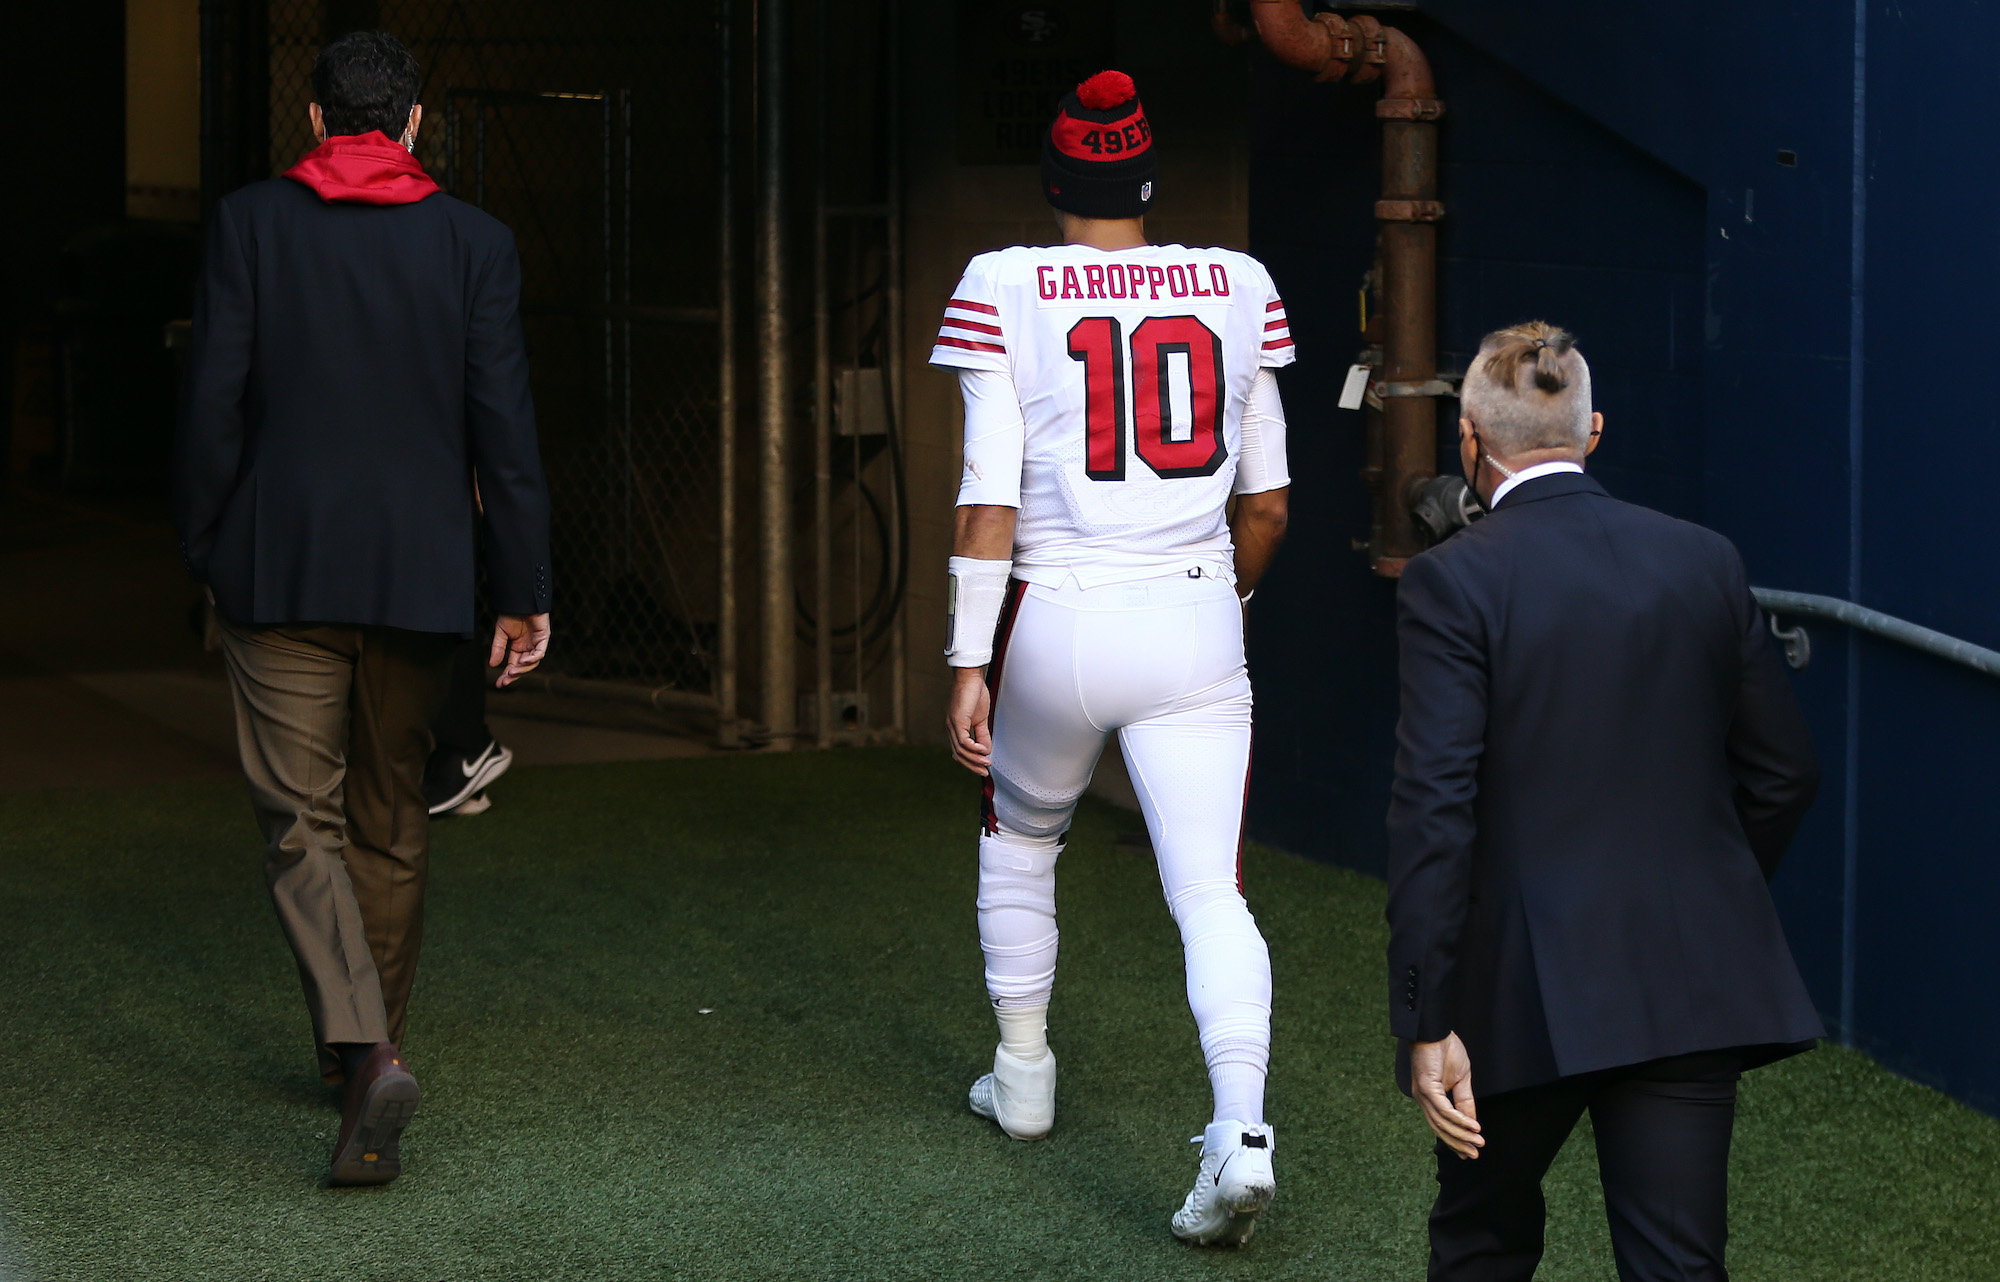 SEATTLE, WASHINGTON - NOVEMBER 01: Quarterback Jimmy Garoppolo #10 of the San Francisco 49ers exits the field as they play the at the start of the fourth quarter of the game at CenturyLink Field on November 01, 2020 in Seattle, Washington. (Photo by Abbie Parr/Getty Images)